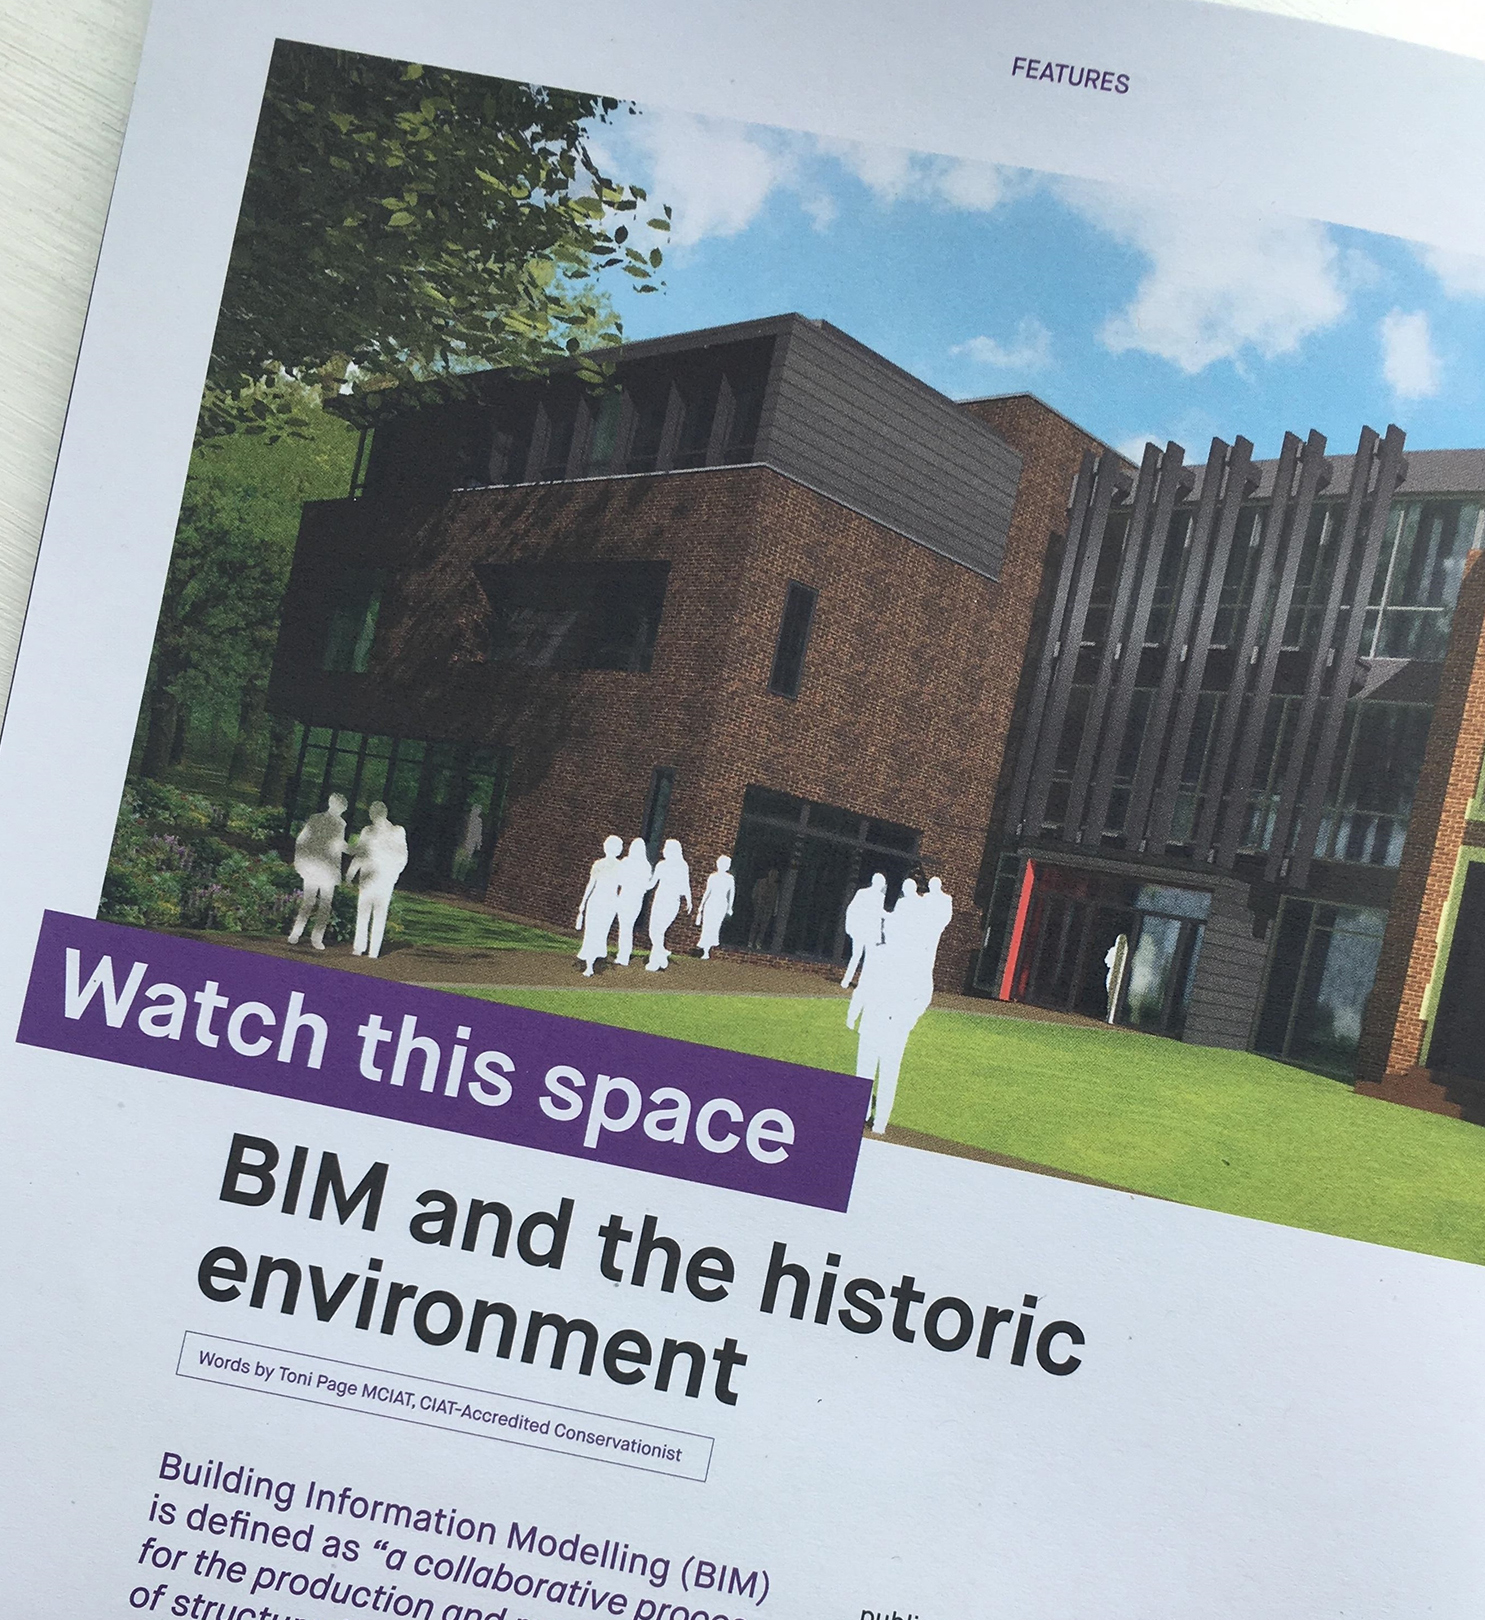 CIAT Publishes BIM Article by Toni Page